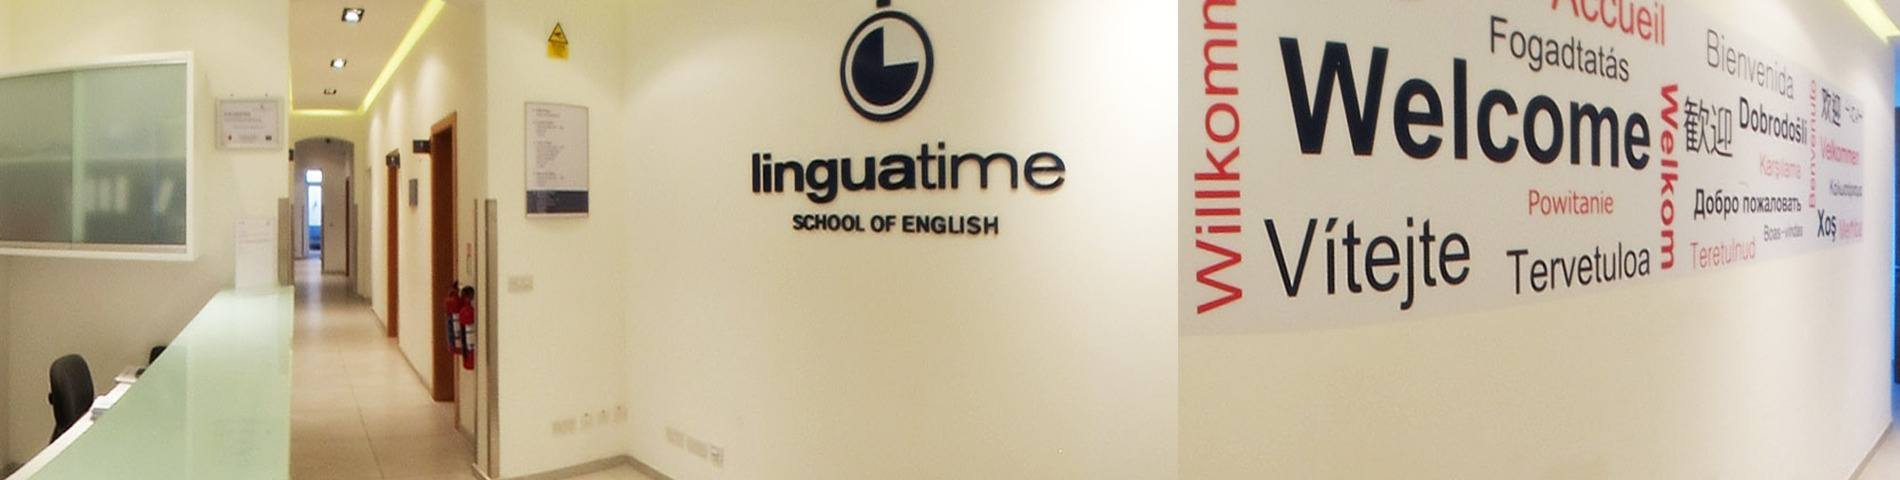 Linguatime School of English画像1